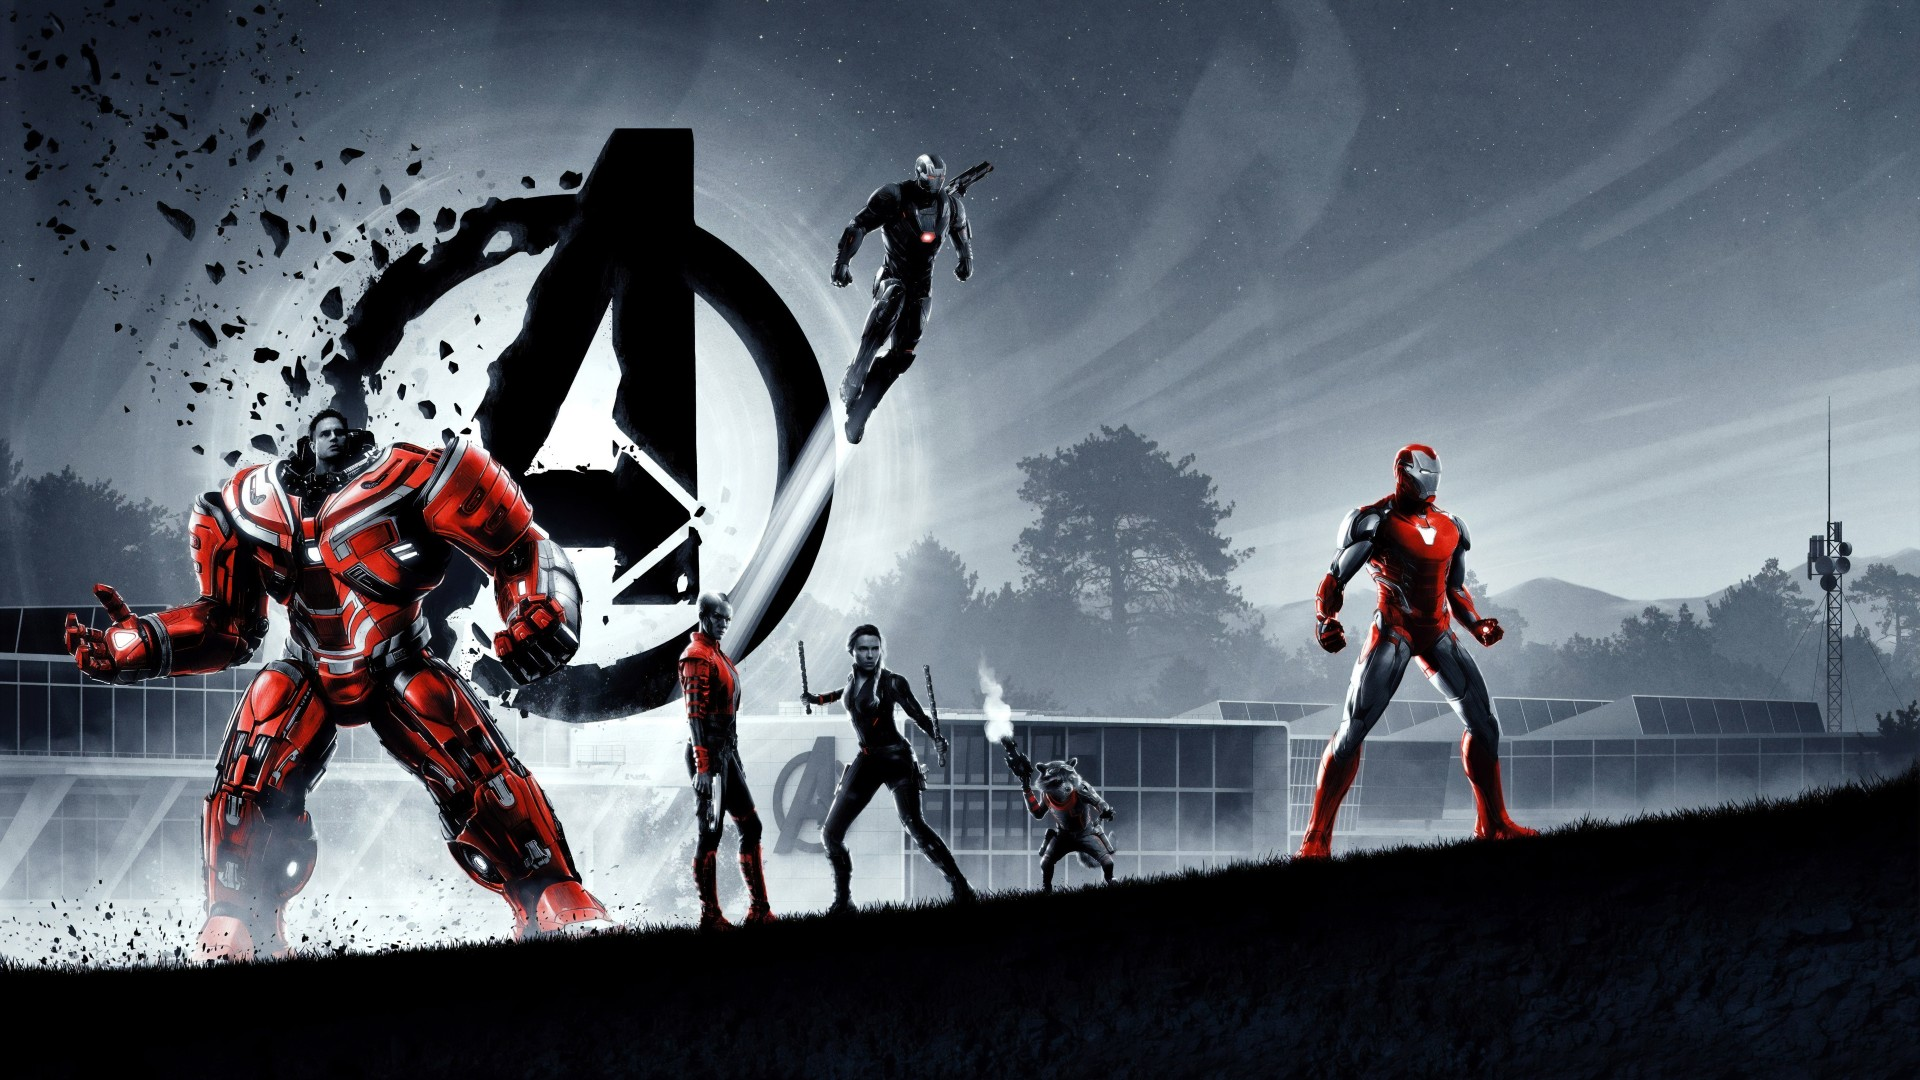 How To Set Live Wallpaper On Iphone X Iron Man Avengers Endgame 4k 8k Wallpapers Hd Wallpapers